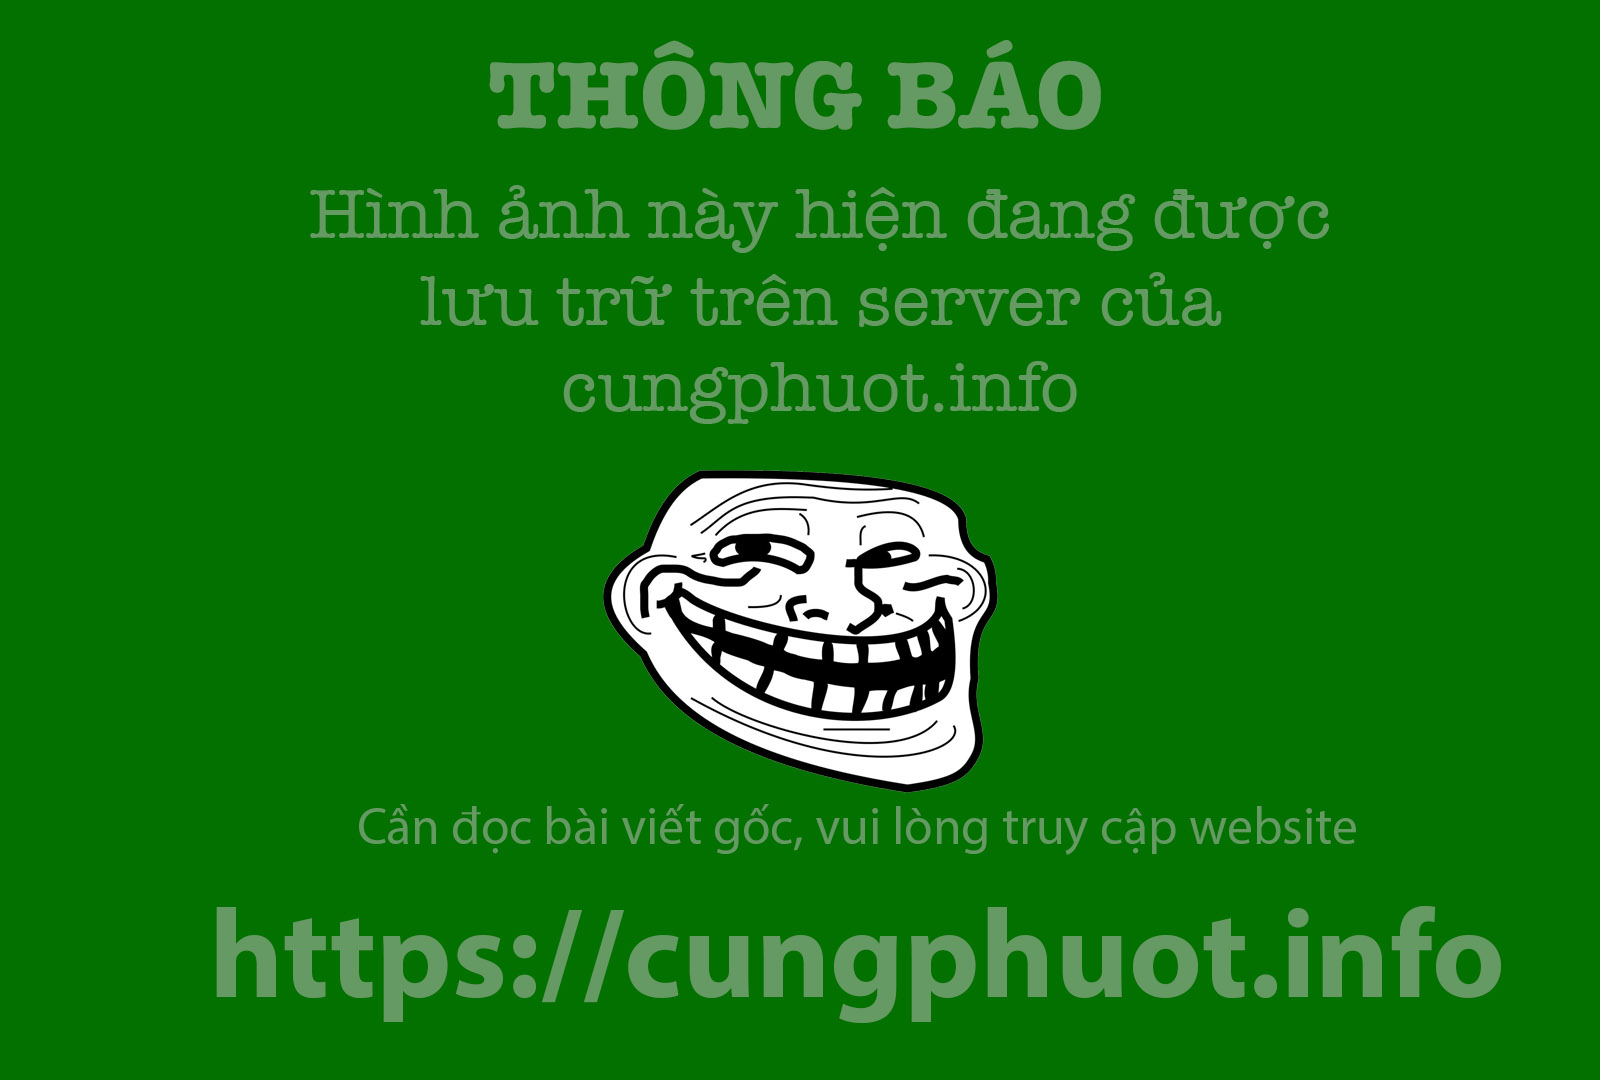 9 cung duong deo hung vi khien tin do du lich muon chinh phuc hinh anh 3